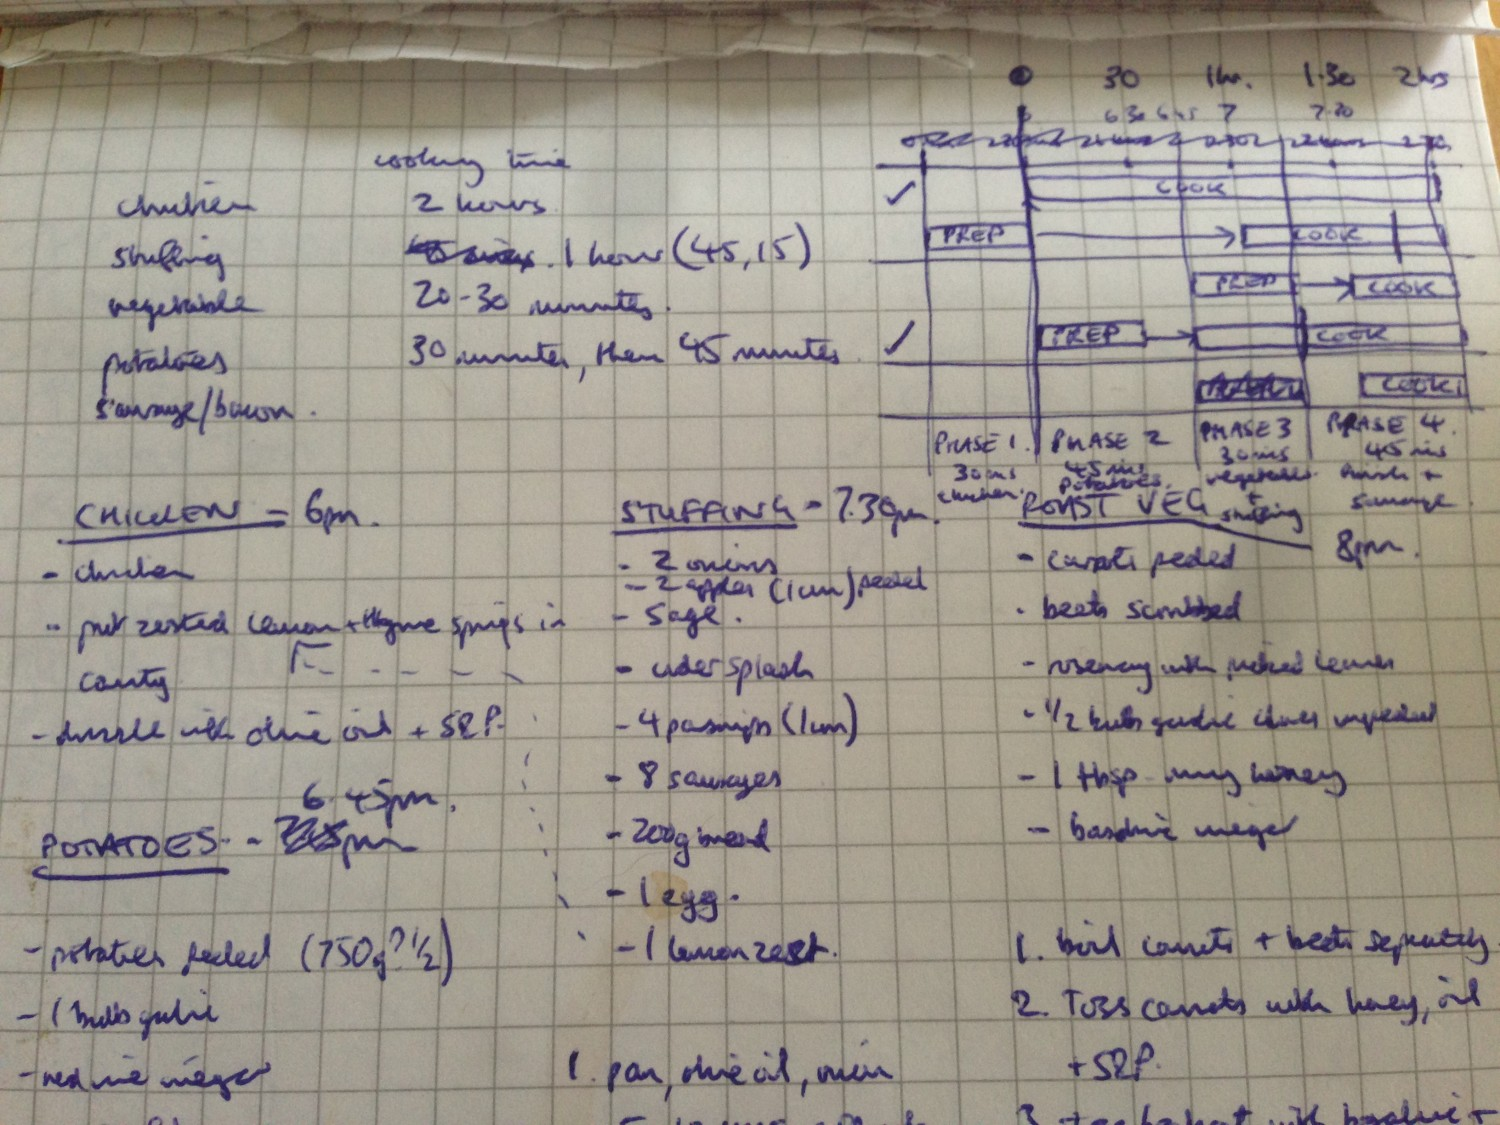 My roast dinner timing scribblings. Note the geeky gantt chart in the top right - entirely optional!